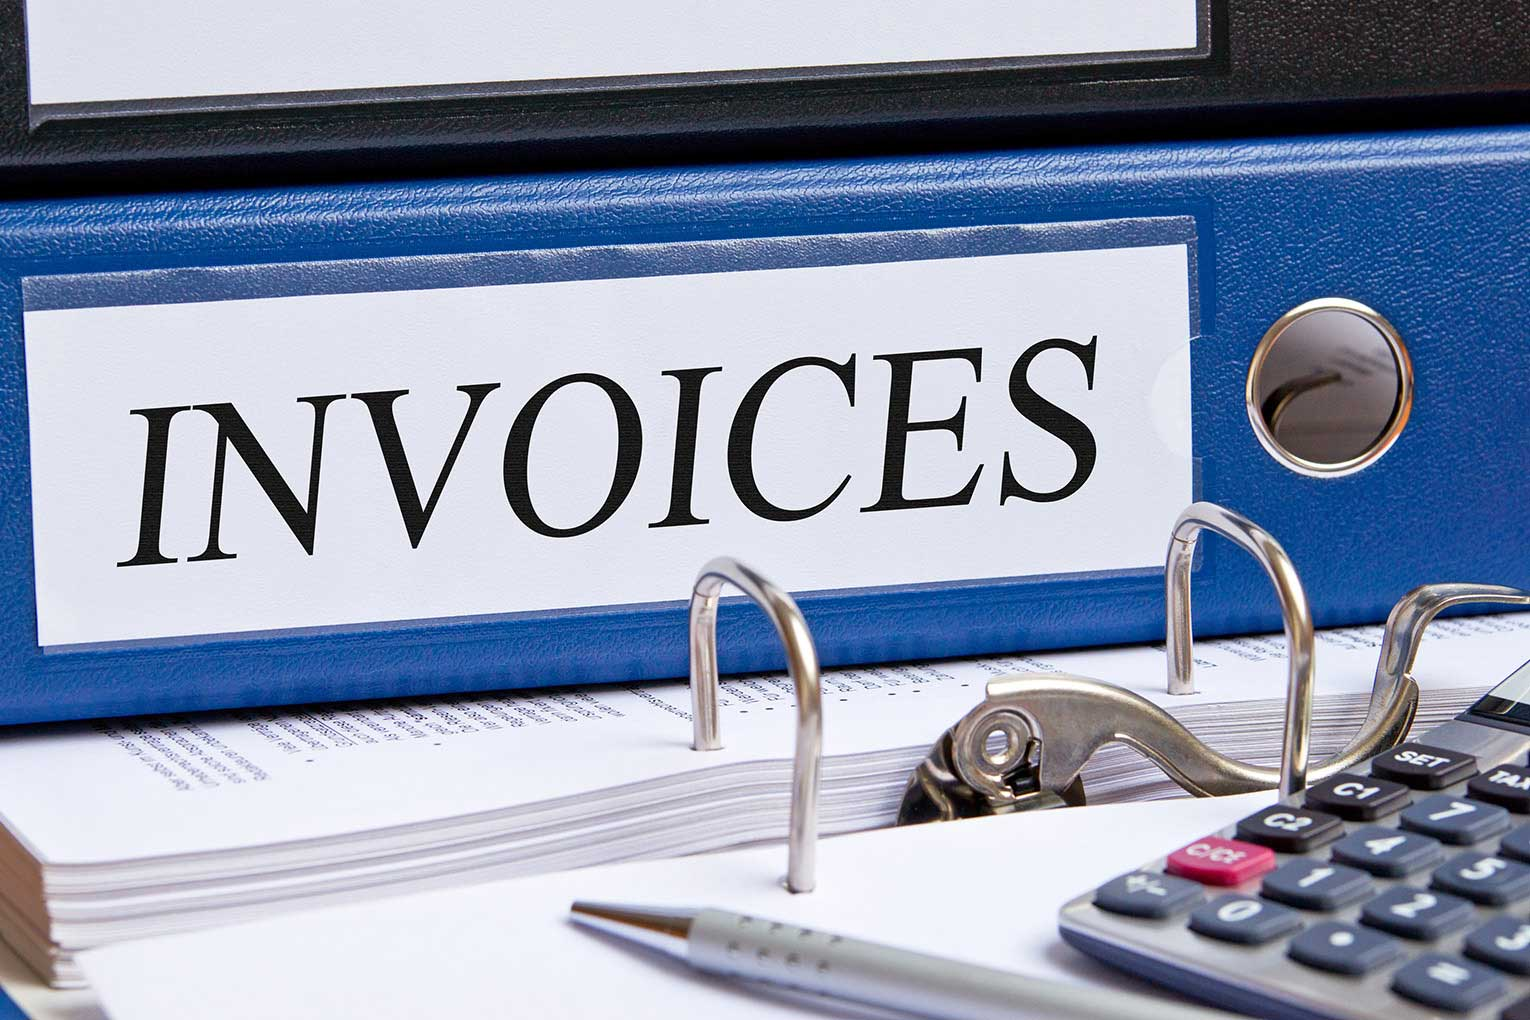 Invoice finance continues to set new records   BestAdvice Record year for ABL and invoice finance